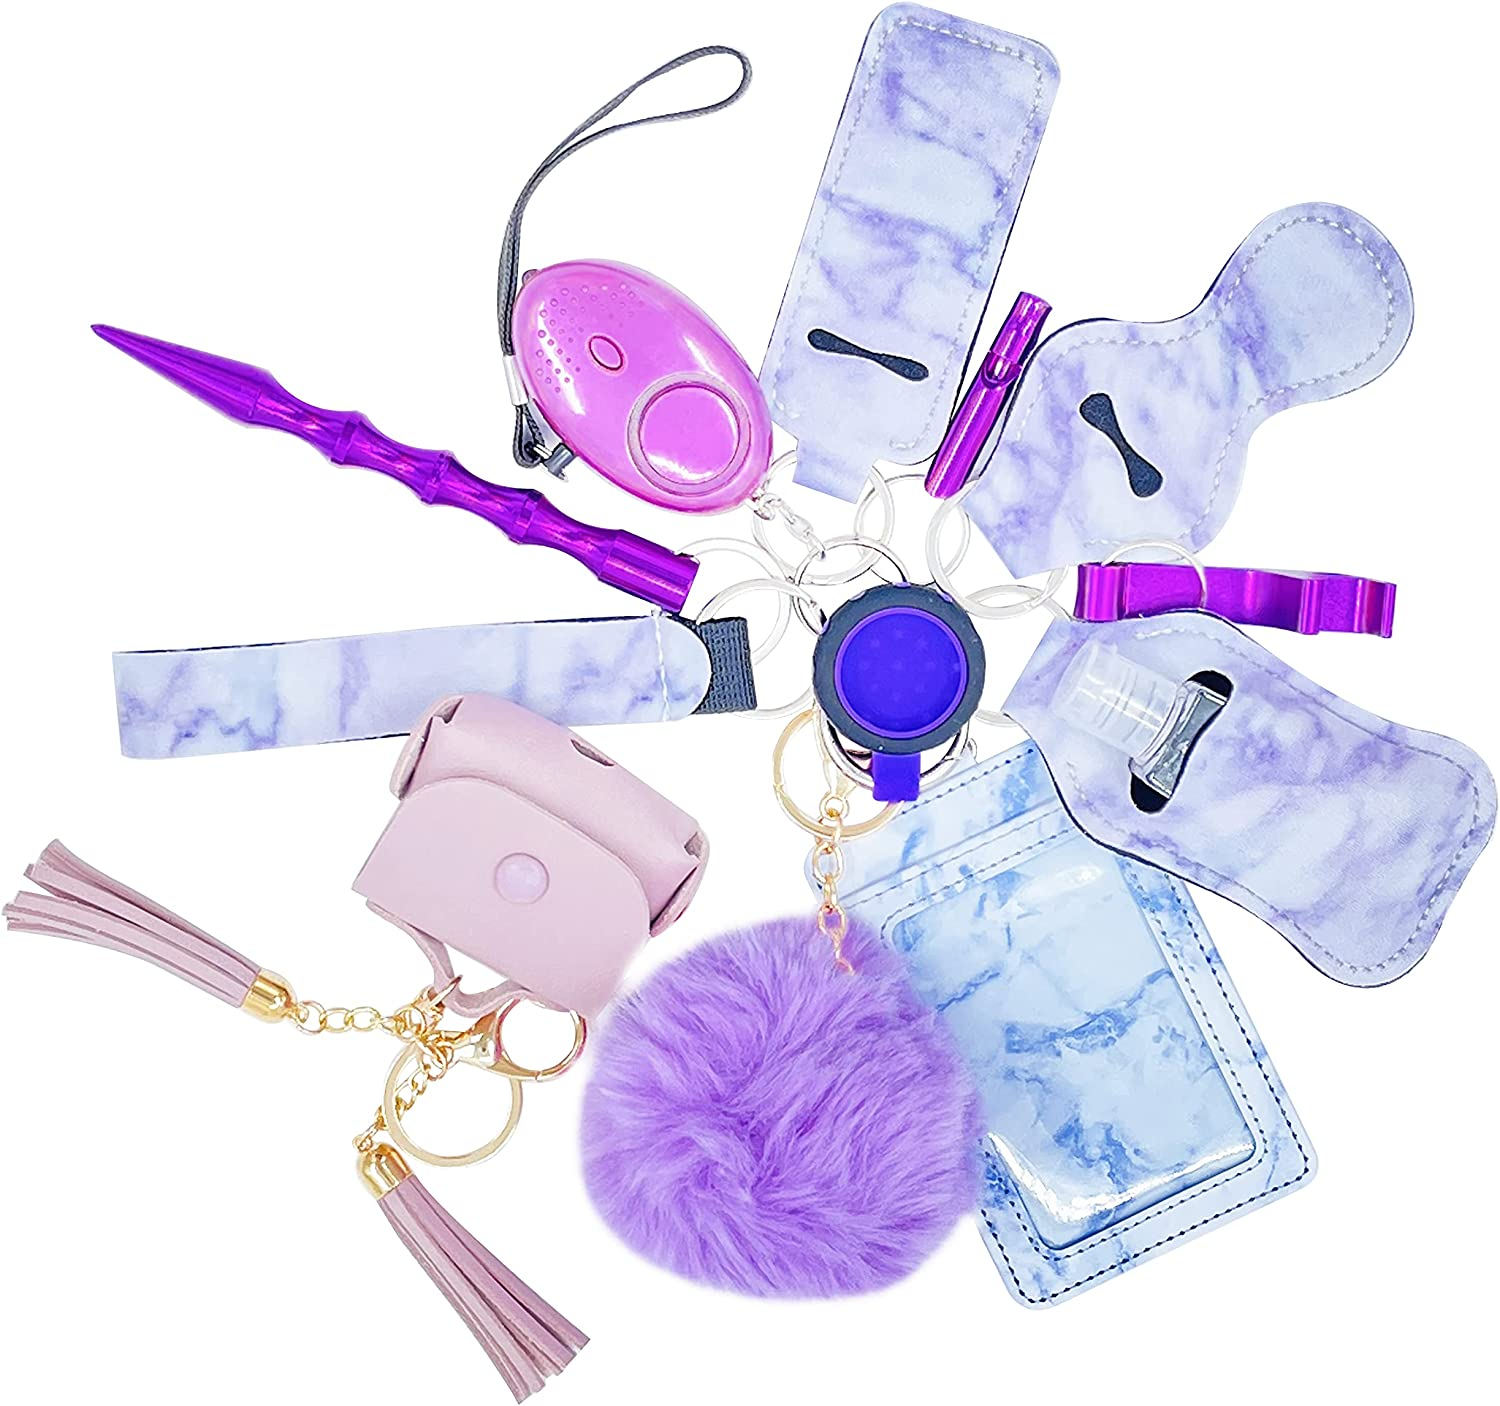 Safety Keychain Set for Woman With Alarm,Window Breaker,Card Holder,hand sanitizer holder,Compatible Airpods/Tags Case Cove